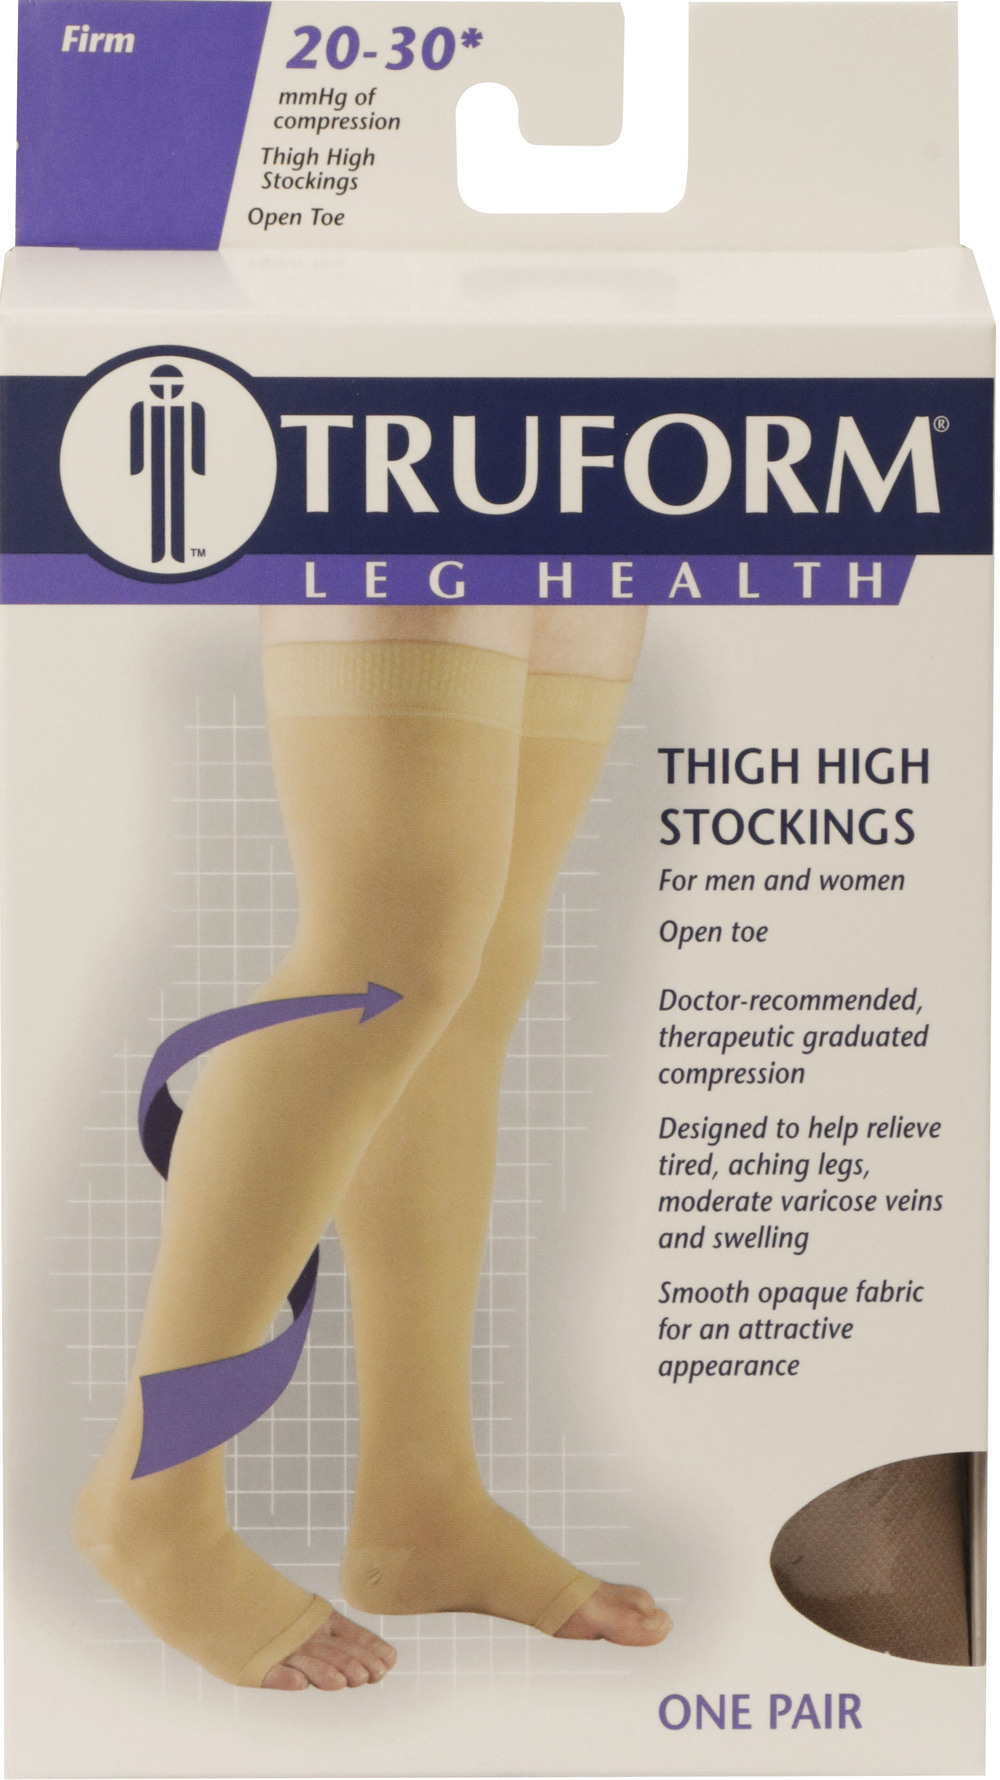 Truform, 0868, 20-30 mmHg, Thigh High, Silicone Dot Top, Open Toe, Stockings, Package